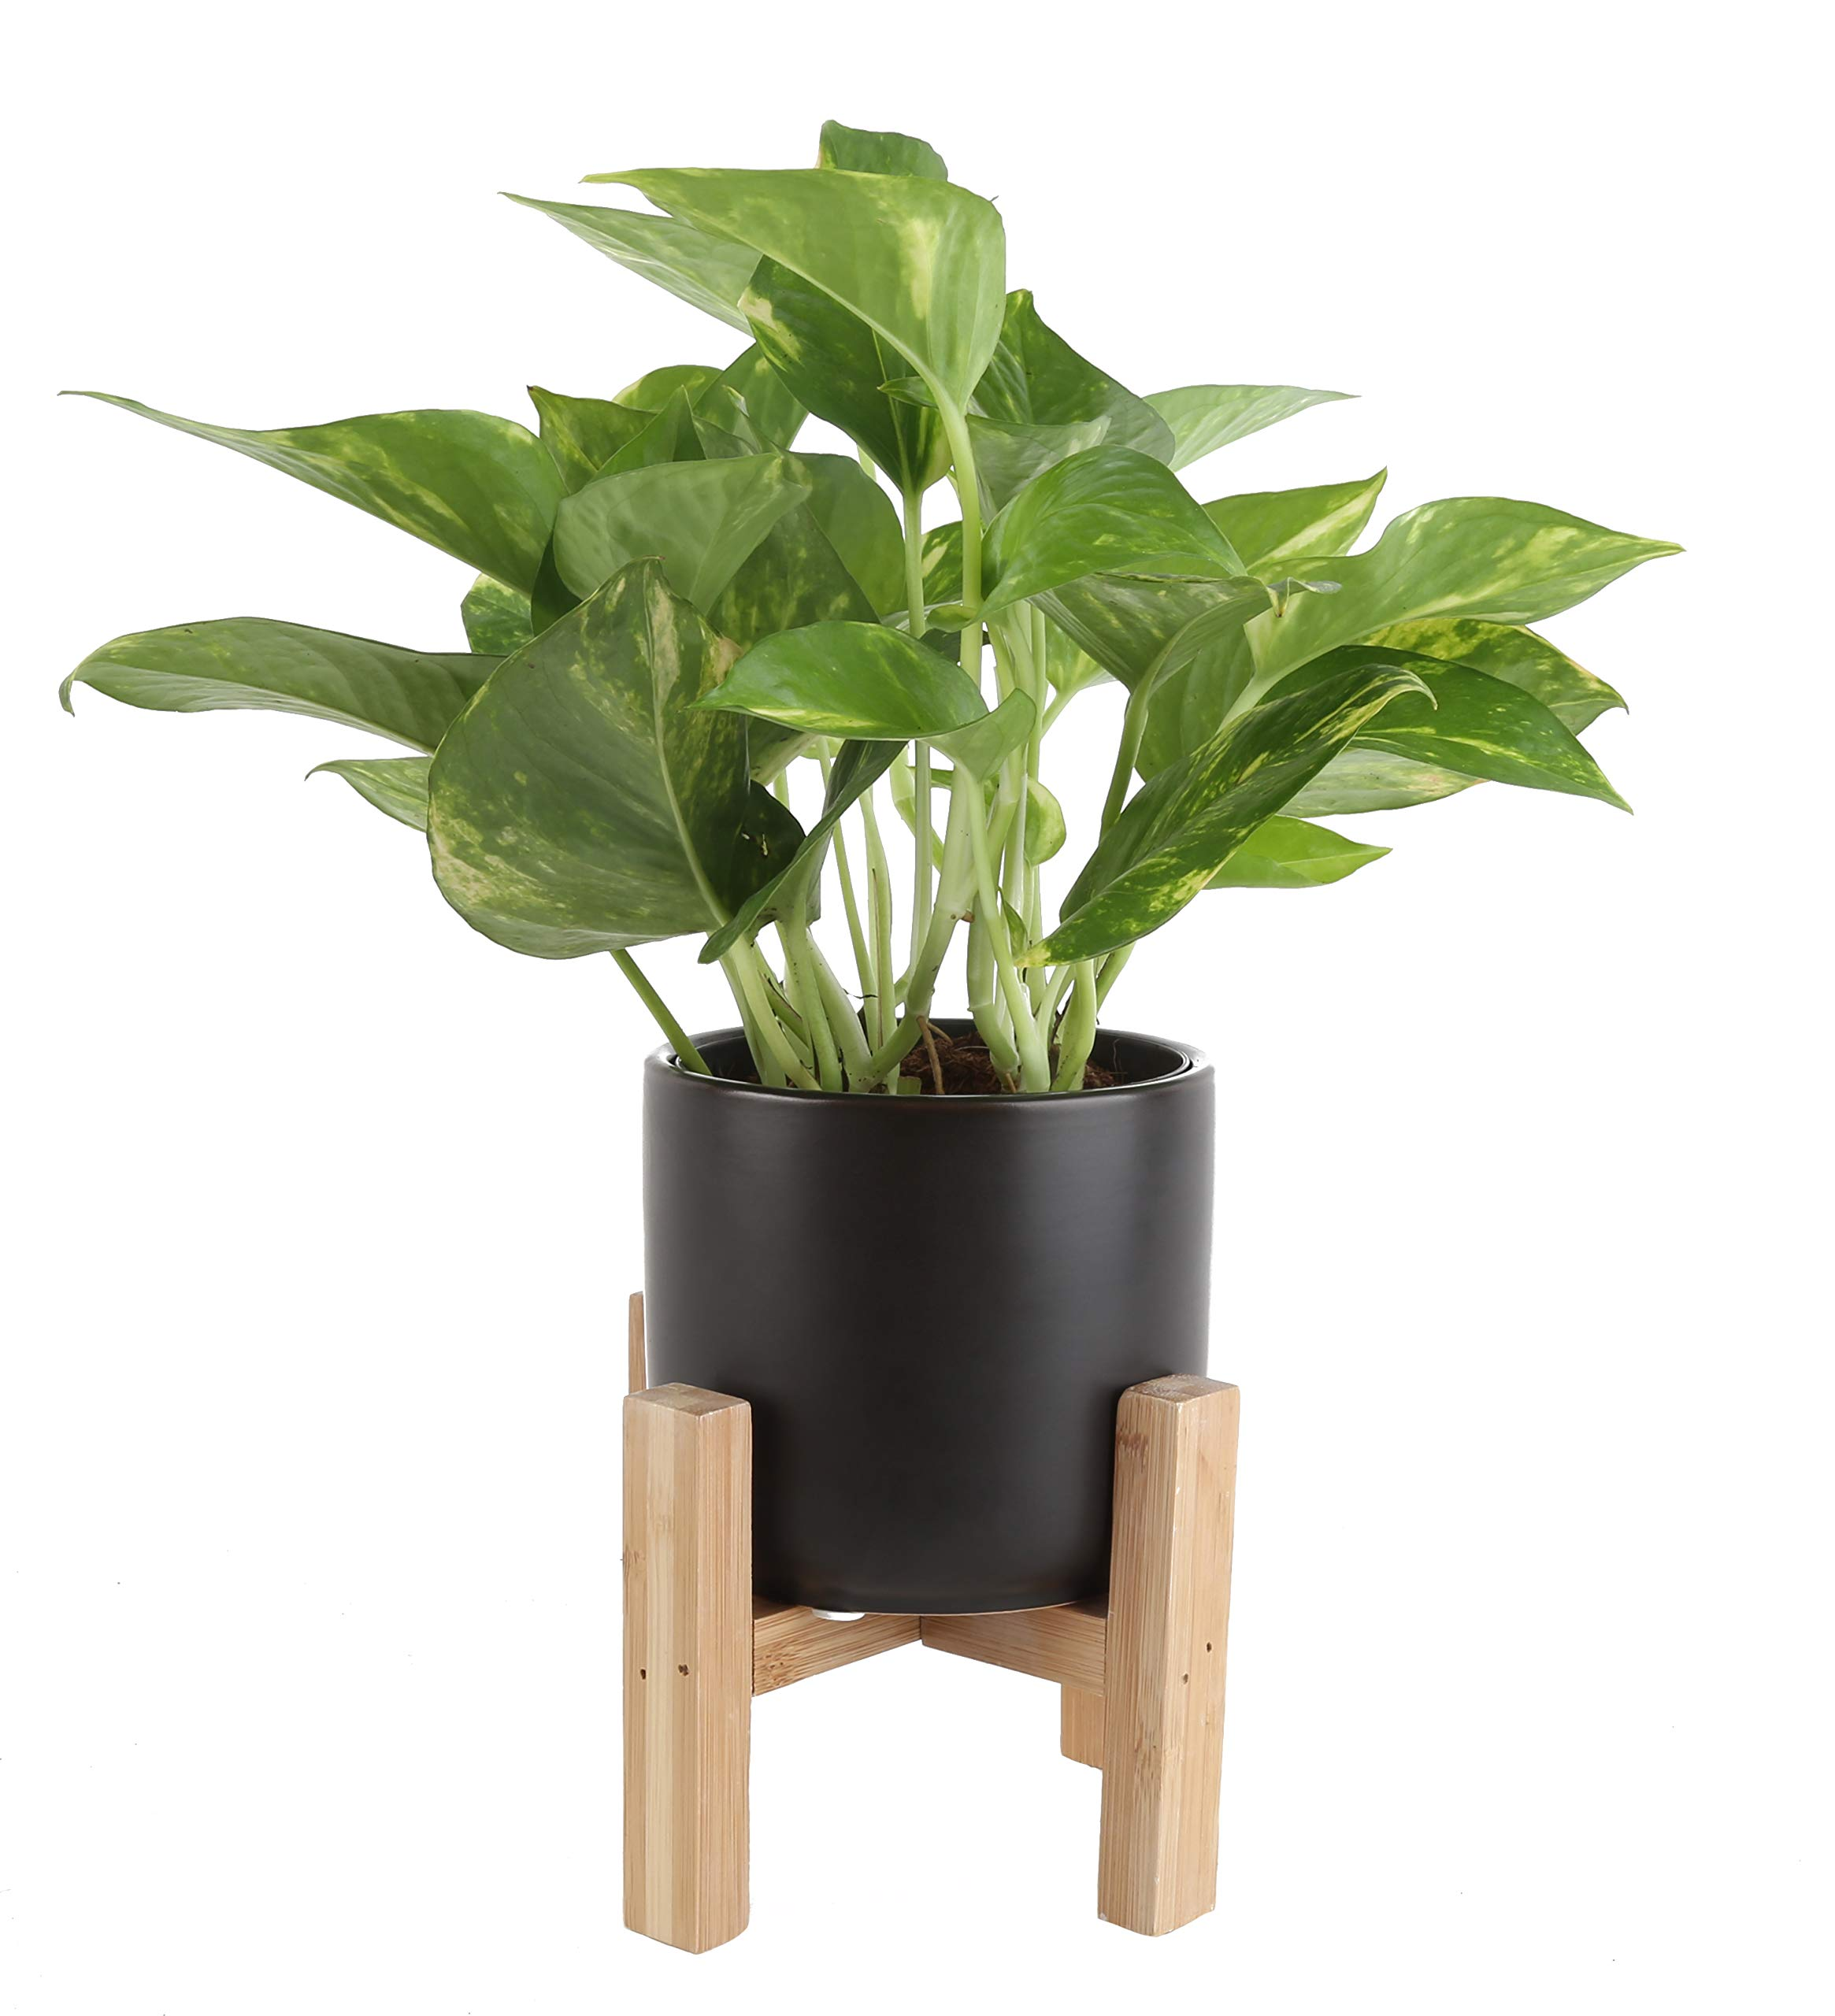 Costa Farms CO.GP04.13.PLSTD.BLK Devil's Ivy, Golden Pothos in Mid-Century Modern Planter and Plant Stand House, 4-inch, Green-Yellow